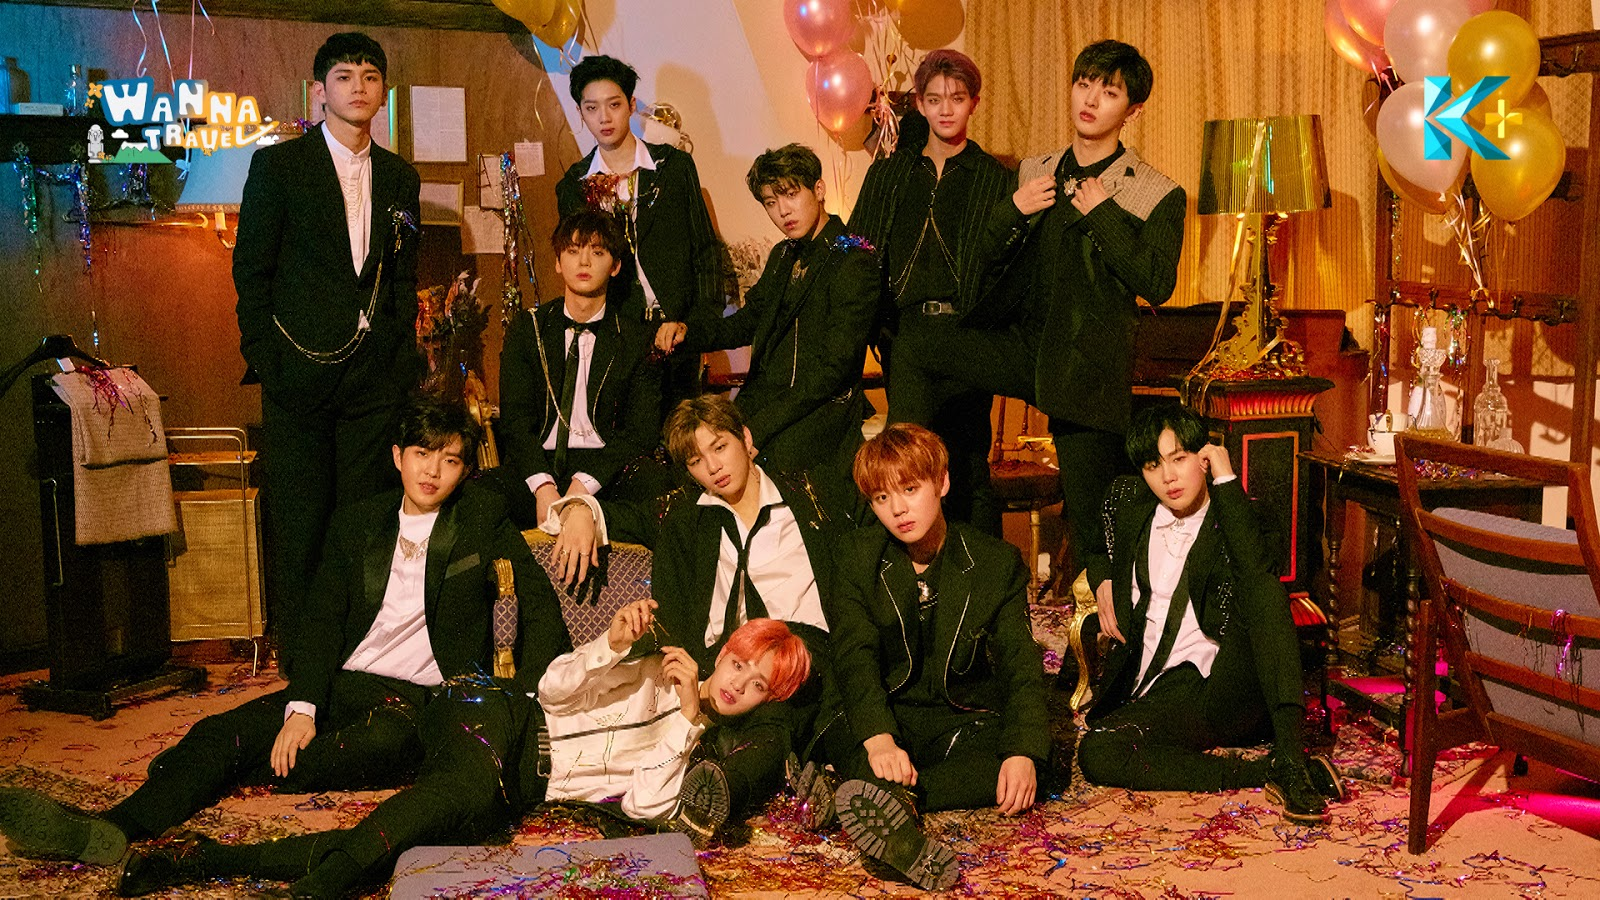 Wanna Travel With Kpop Boyband Wanna One On K Plus The Life Trends